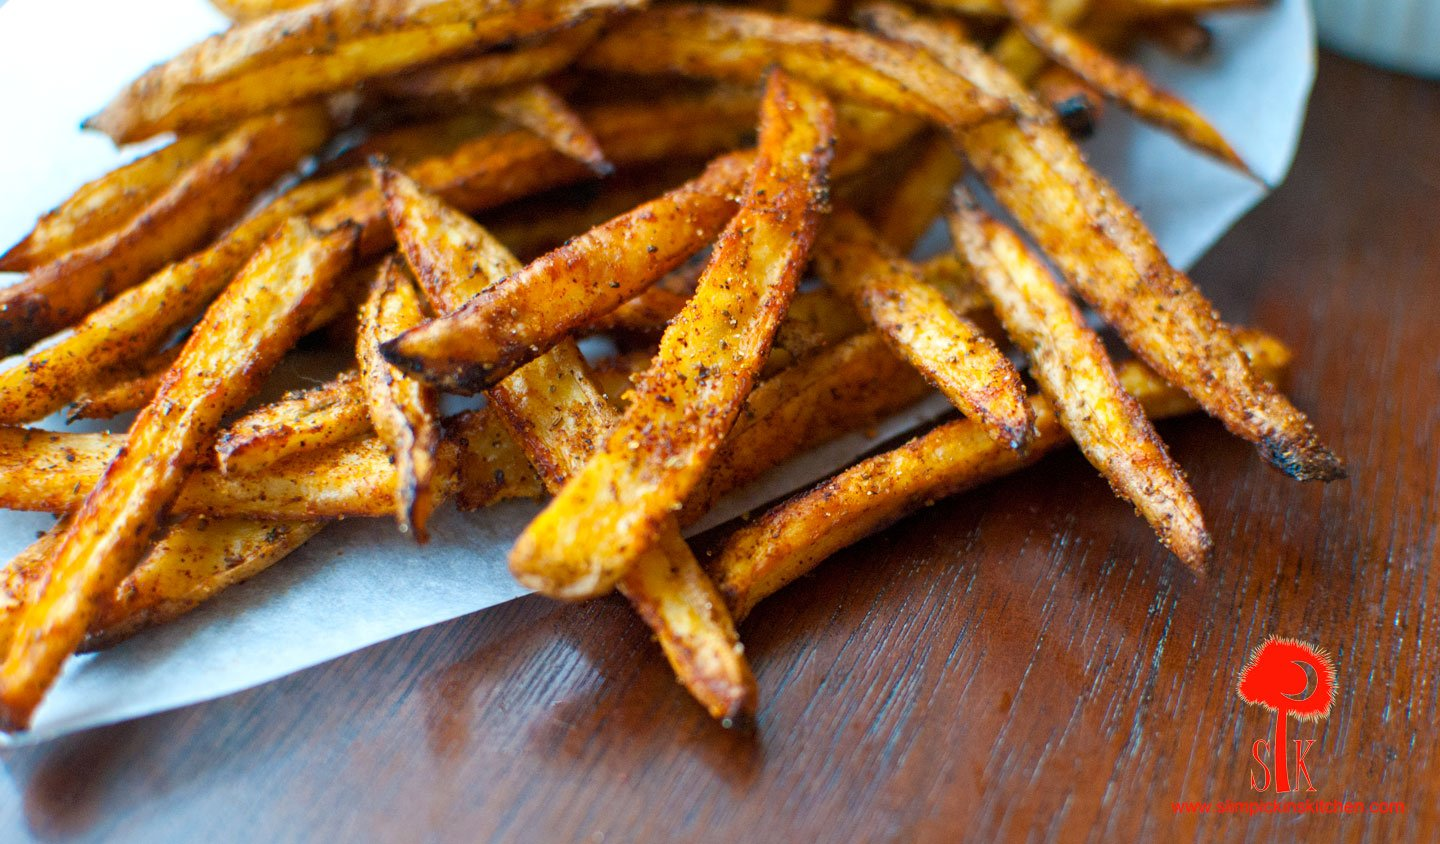 ... french fries oven baked french fries delicious oven french fries